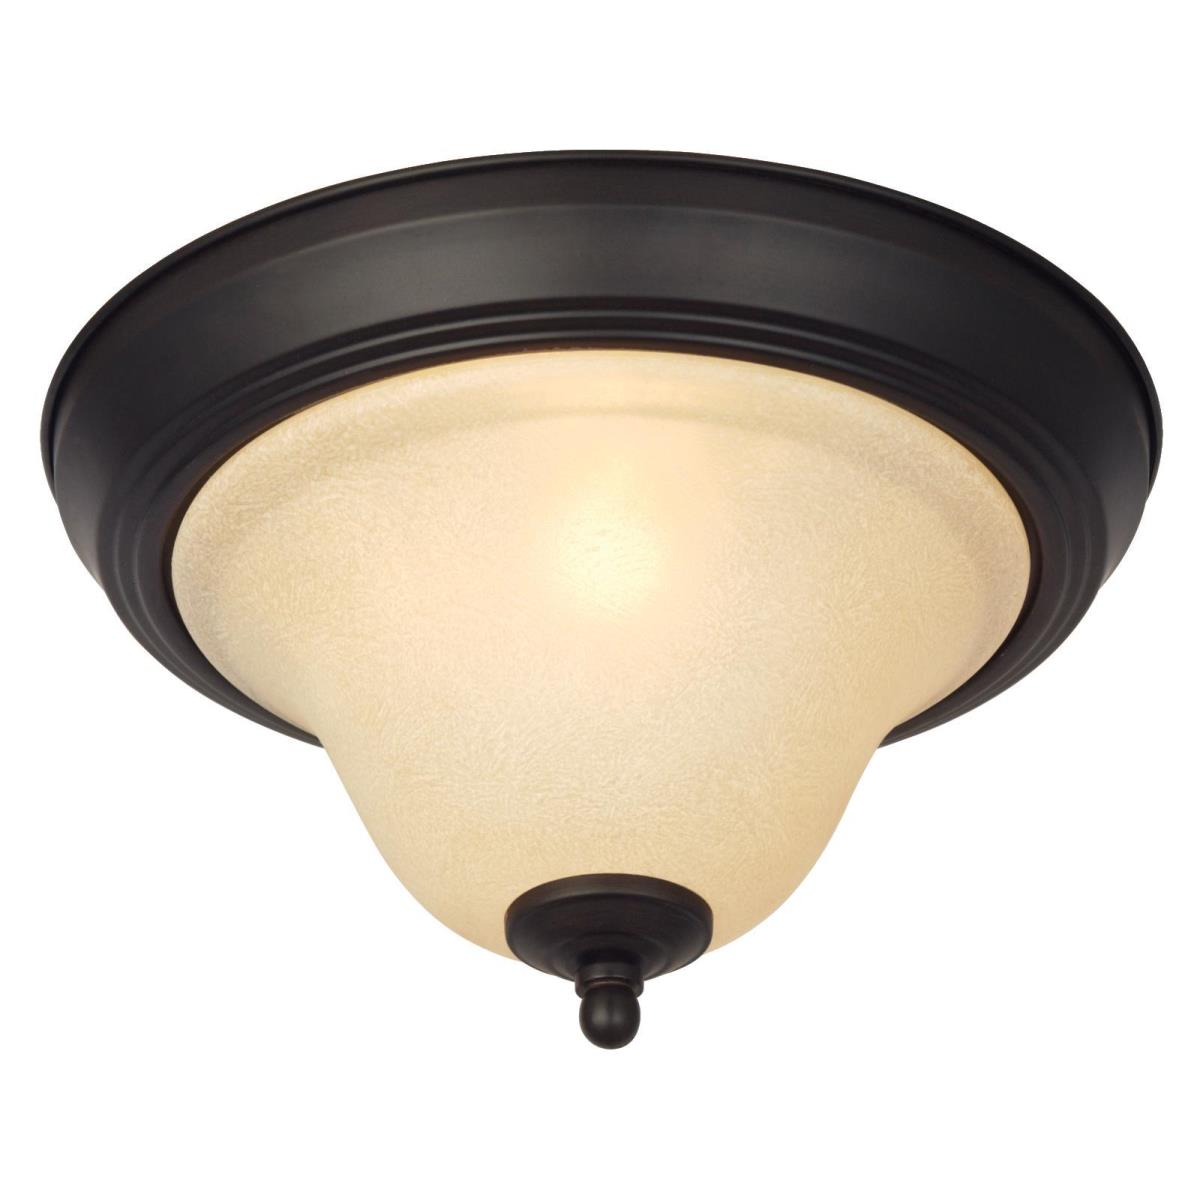 1 Light Flush Ceiling Fixture Dark Bronze Finish with Antique Amber Glass